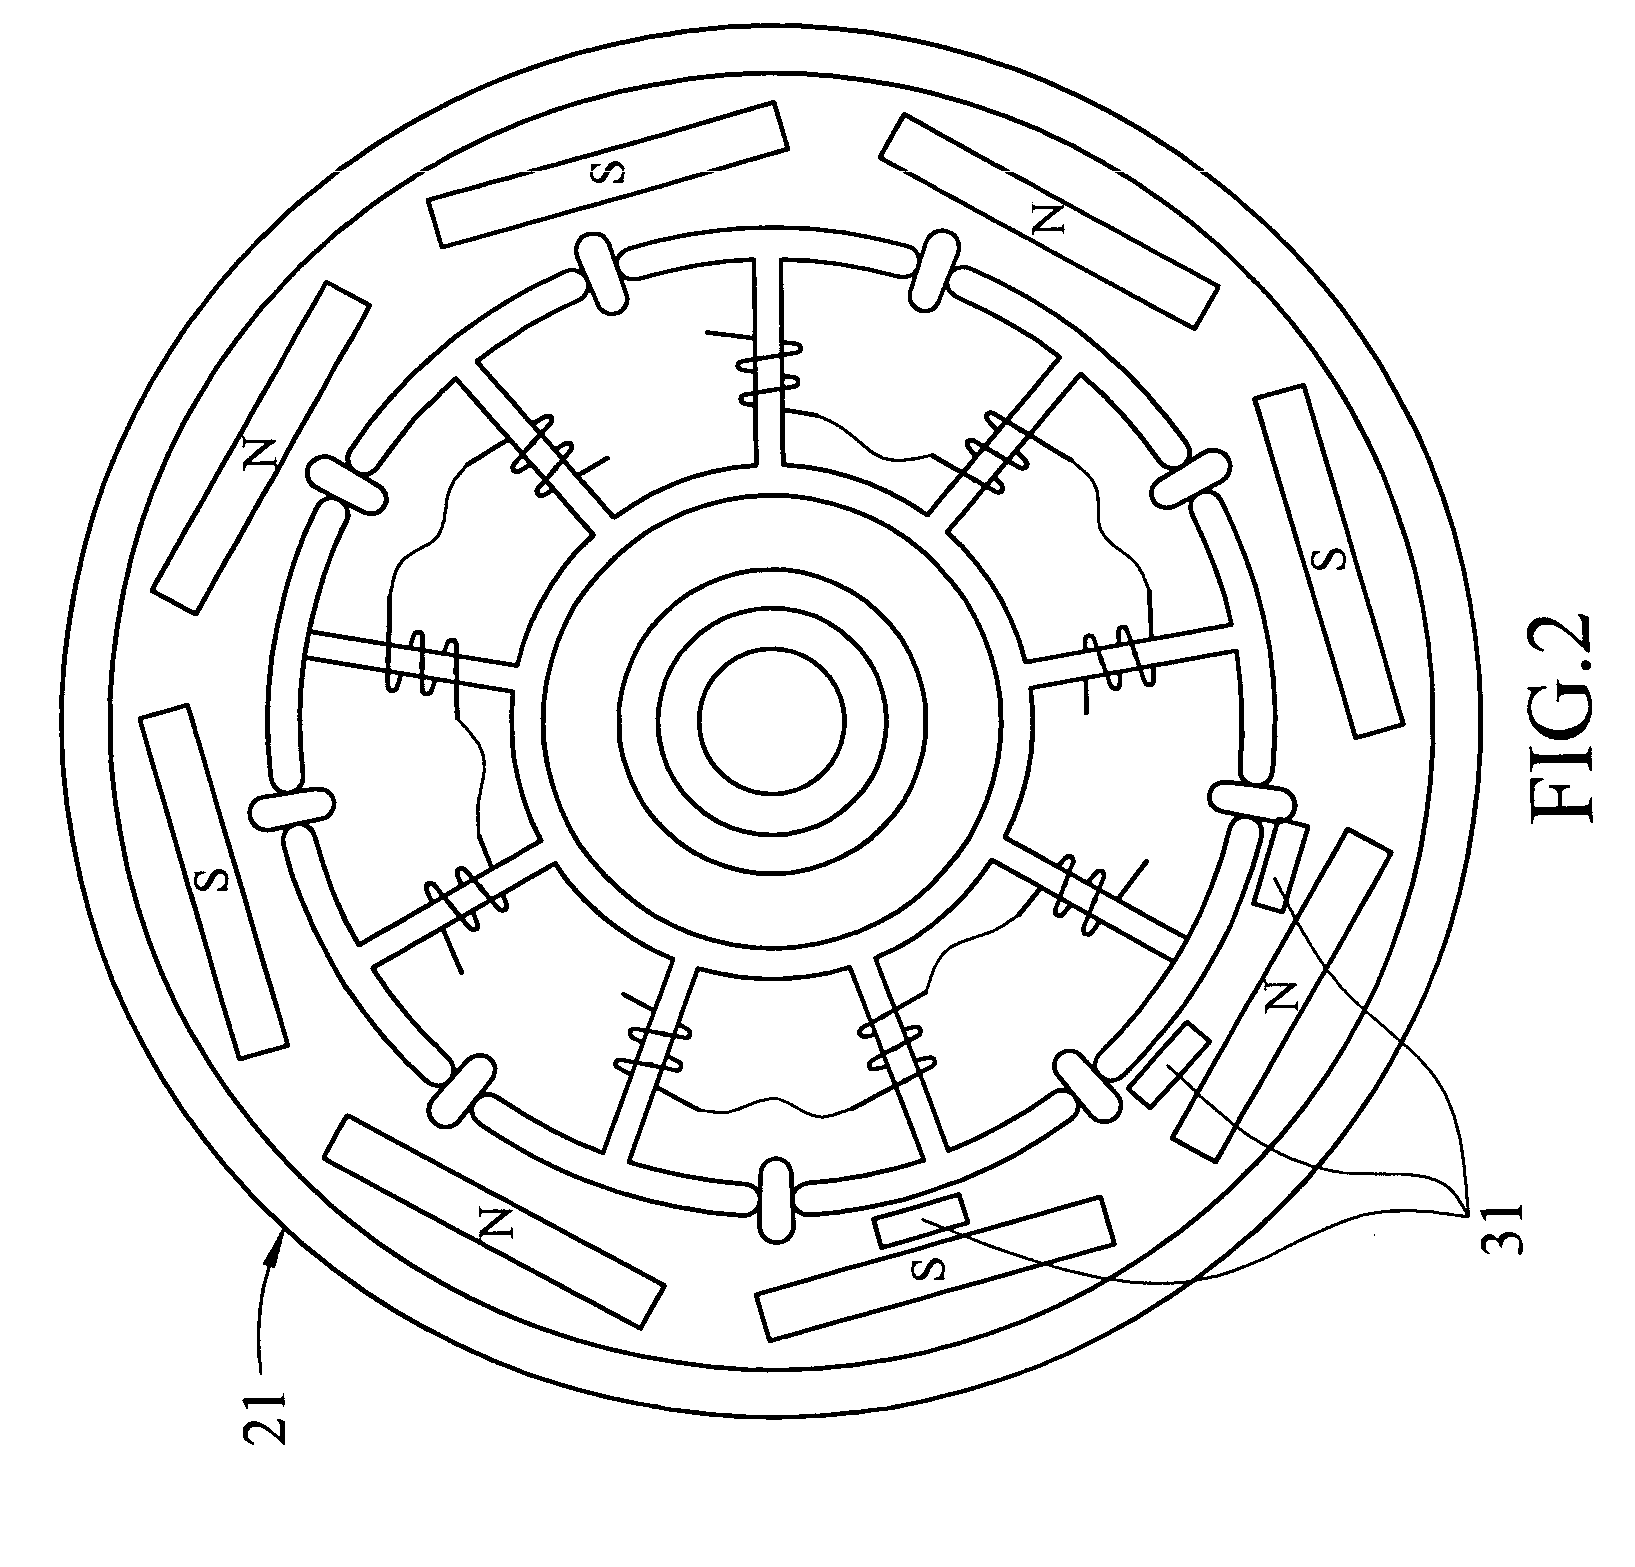 awesome ceiling fan coil connection images - images for wiring, Wiring diagram